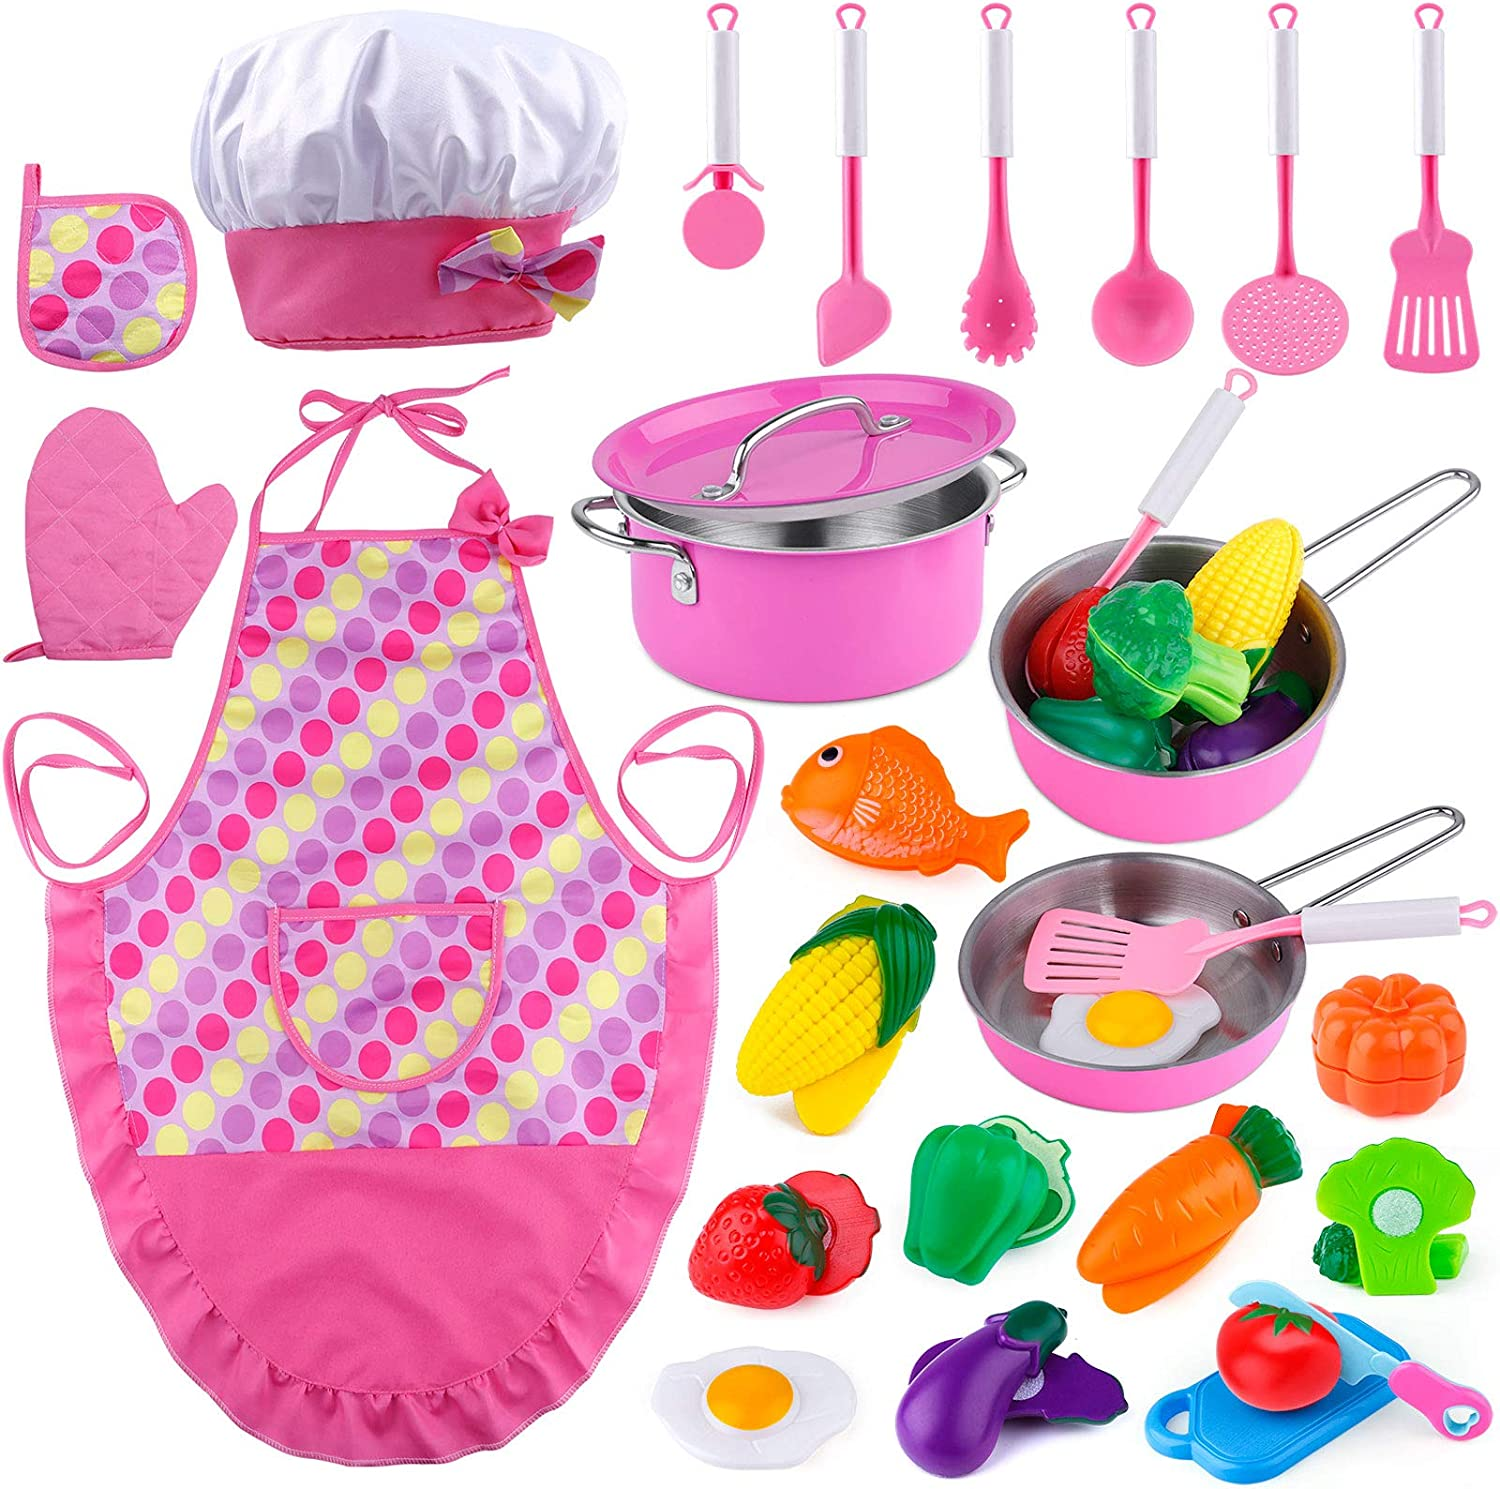 INNOCHEER Kids Cooking Set with Apron and Hat, 26pcs Kitchen Pretend Play Toys with Stainless Steel Cookware Pots and Pans Set, Cooking Utensils, Cutting Vegetables for Toddler Boys and Girls Ages 3+